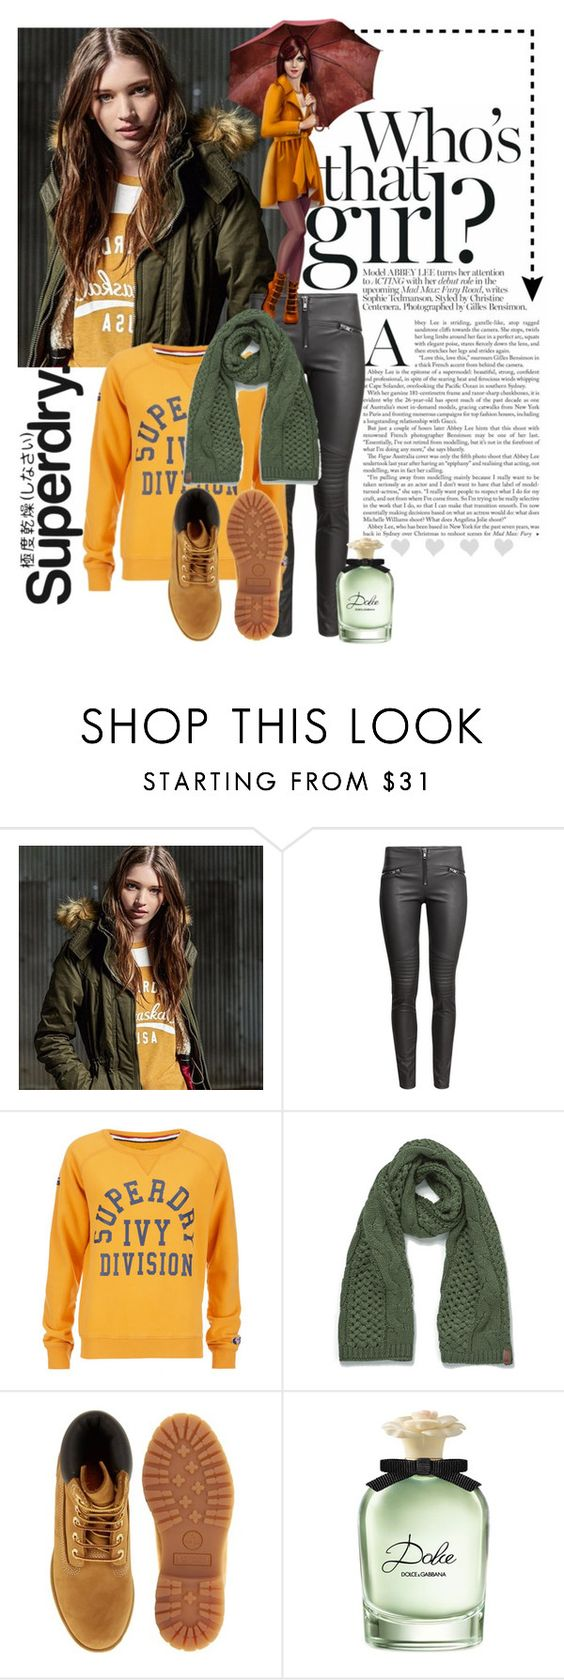 """The Cover Up – Jackets by Superdry: Contest Entry"" by natalijaxxx ❤ liked on Polyvore featuring Superdry, H&M, Timberland and Dolce&Gabbana"